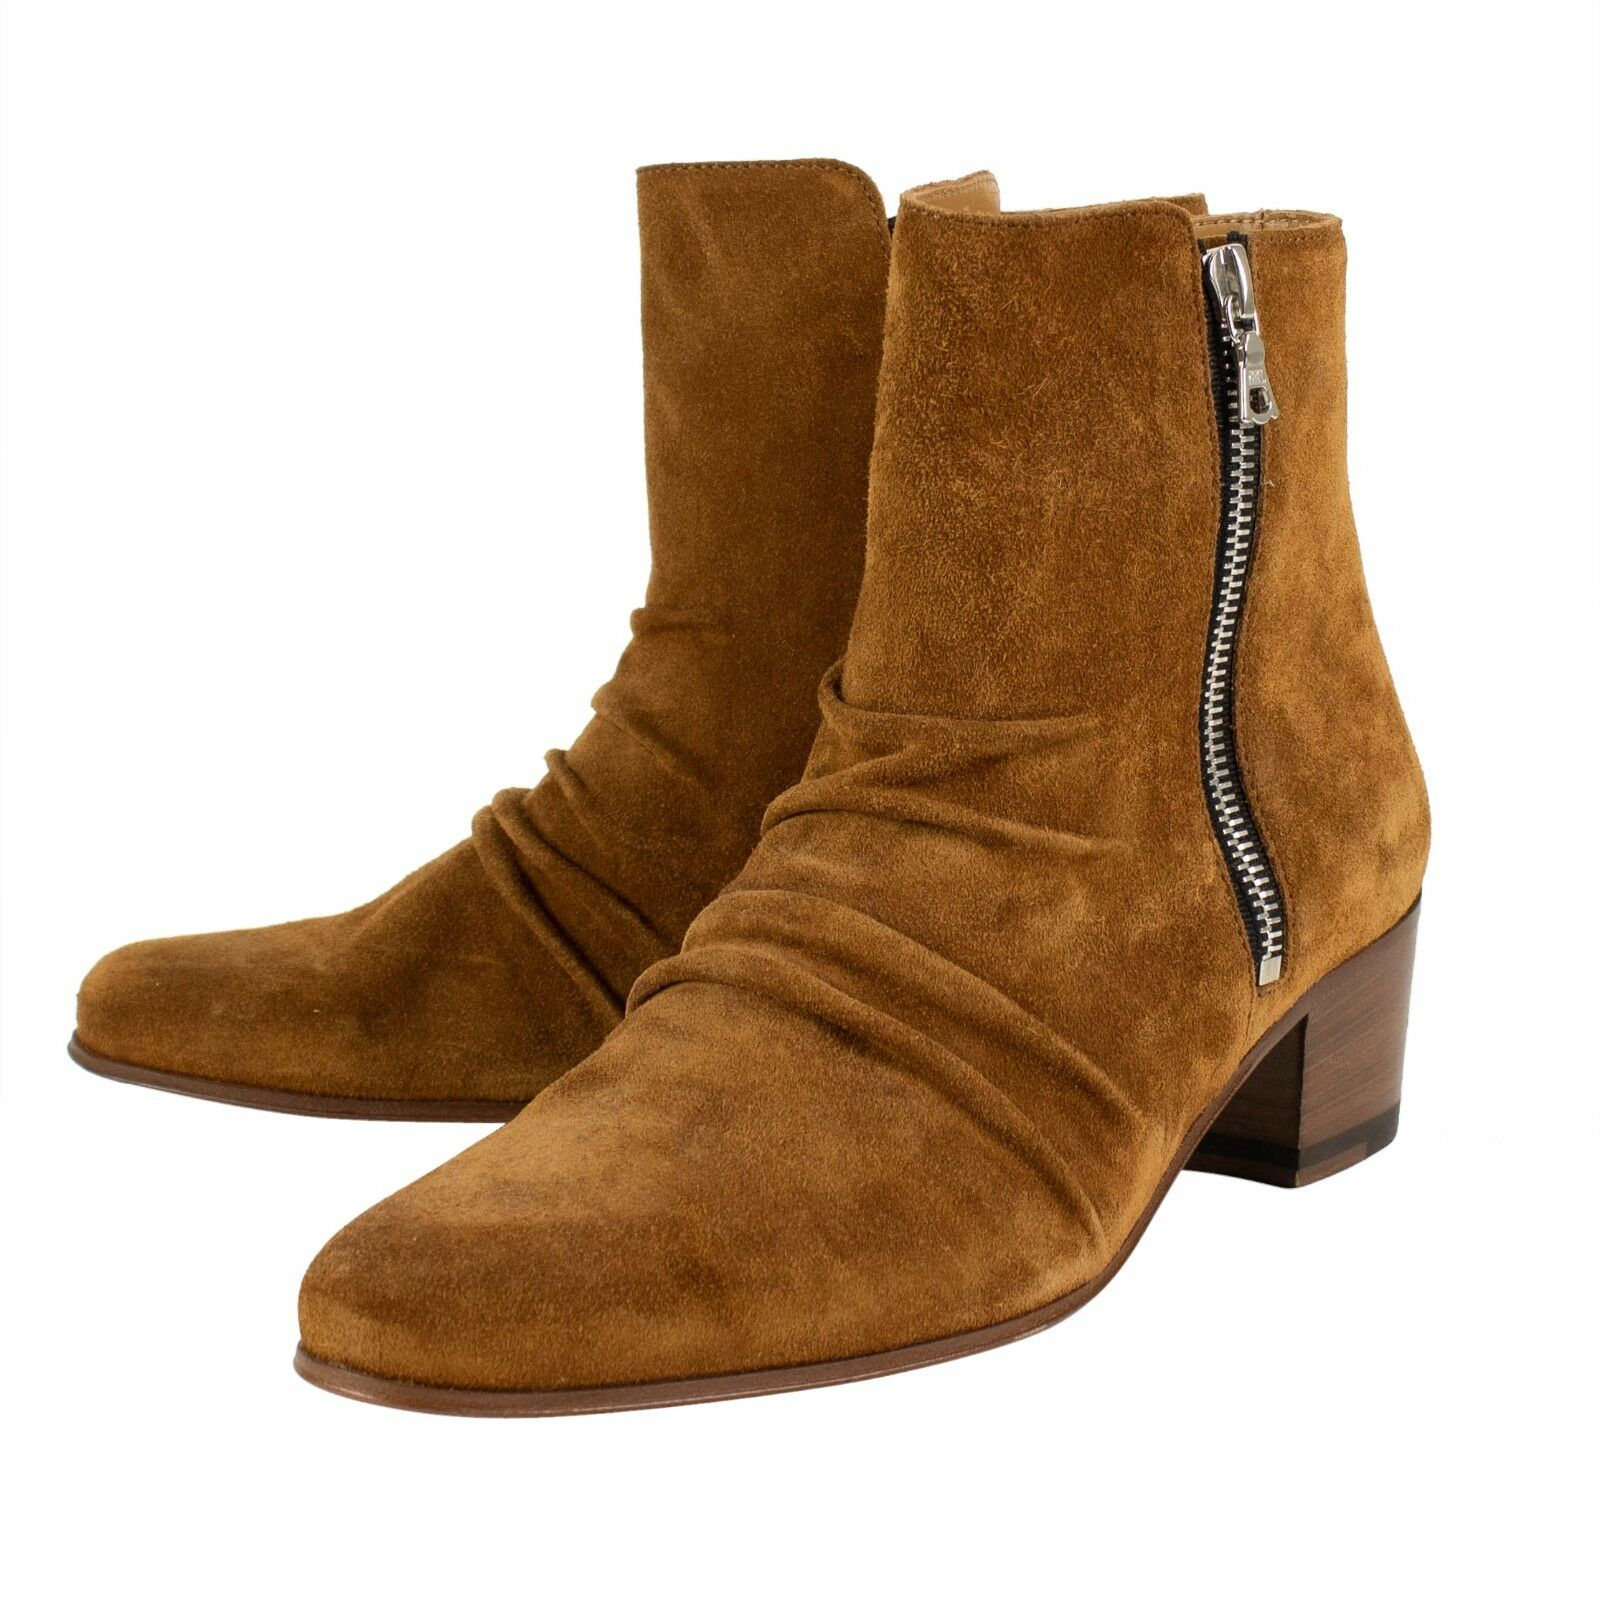 NIB AMIRI 'Stack Boot' Brown Suede Boot shoes shoes shoes Size 8 US 38 EU  995 563ed8